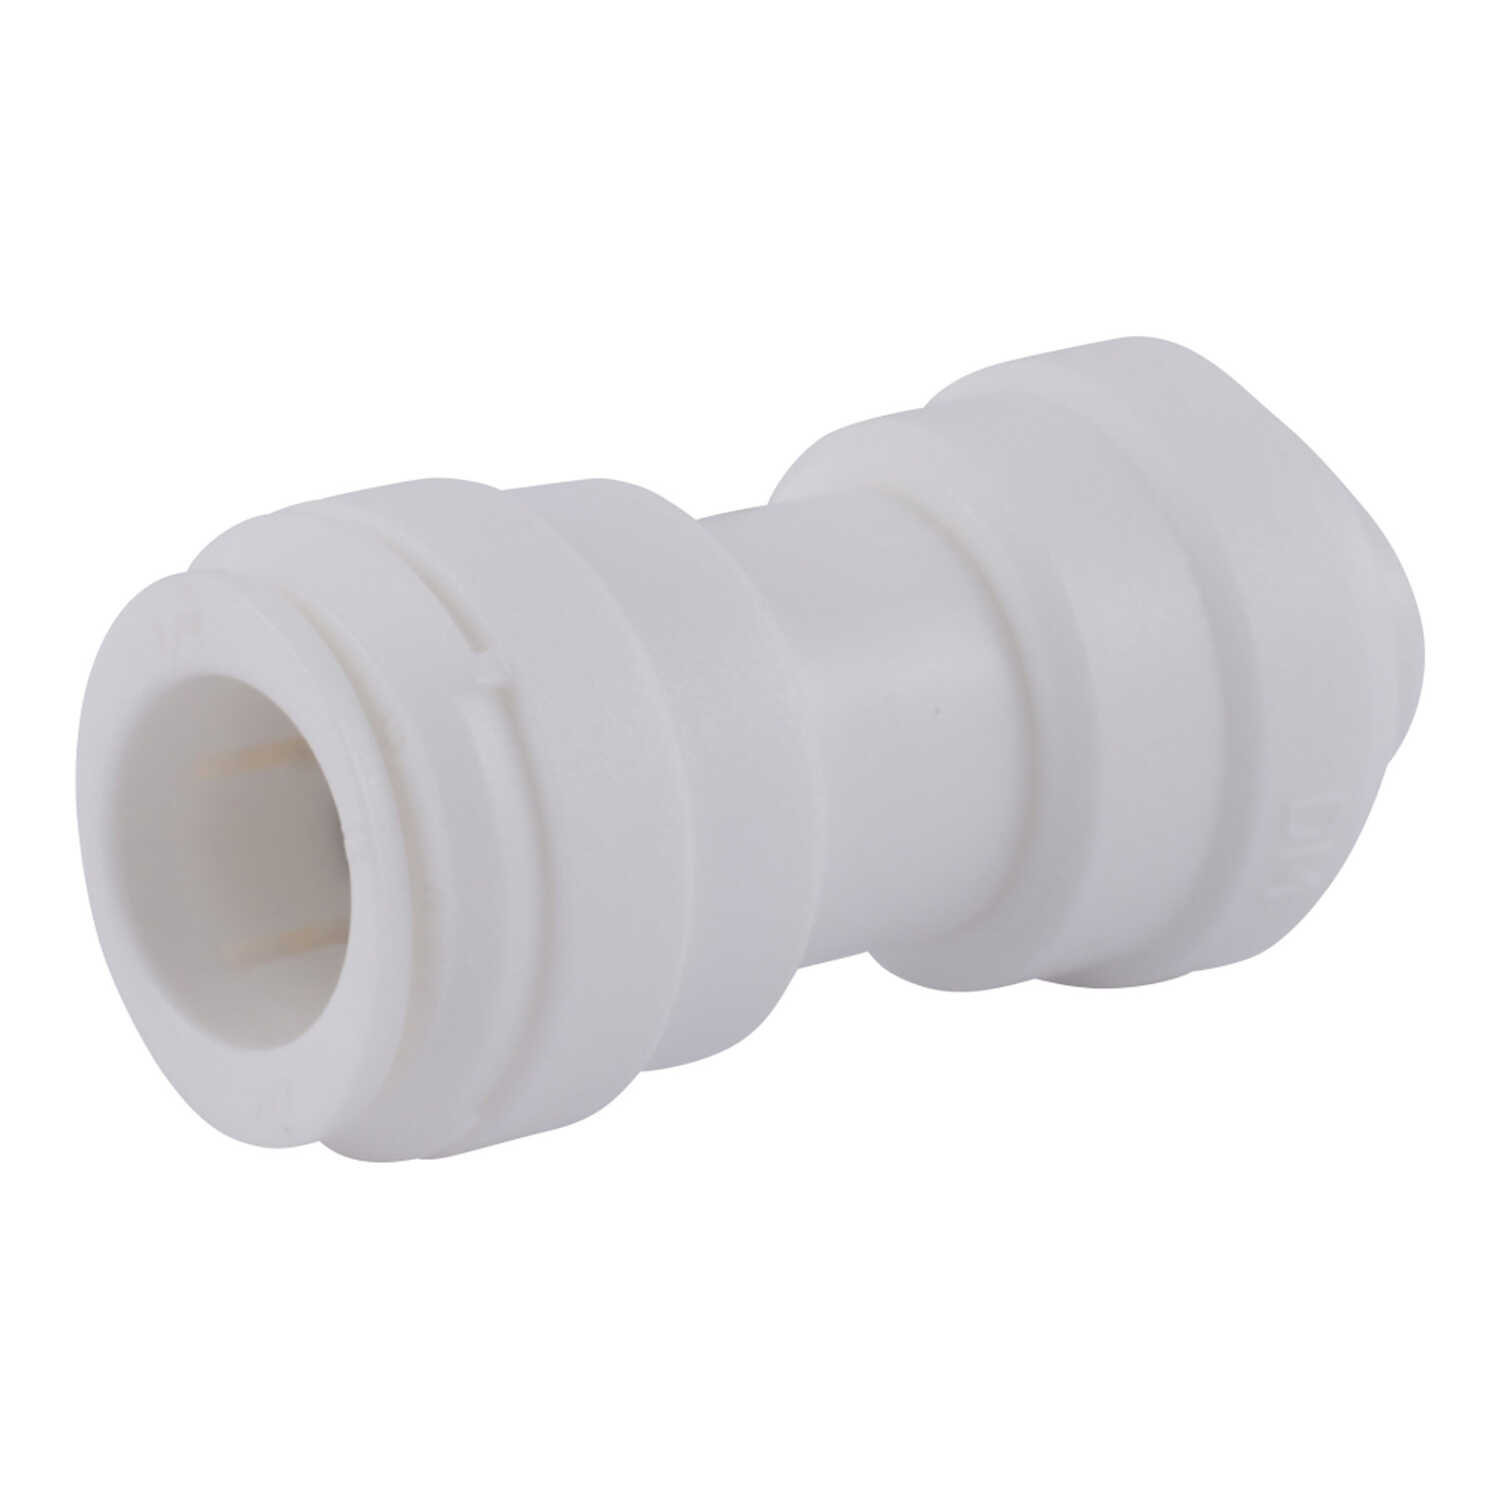 SharkBite  Quick Connect  1/2 in. Push   x 3/8 in. Dia. Push  Plastic  Reducing Coupling